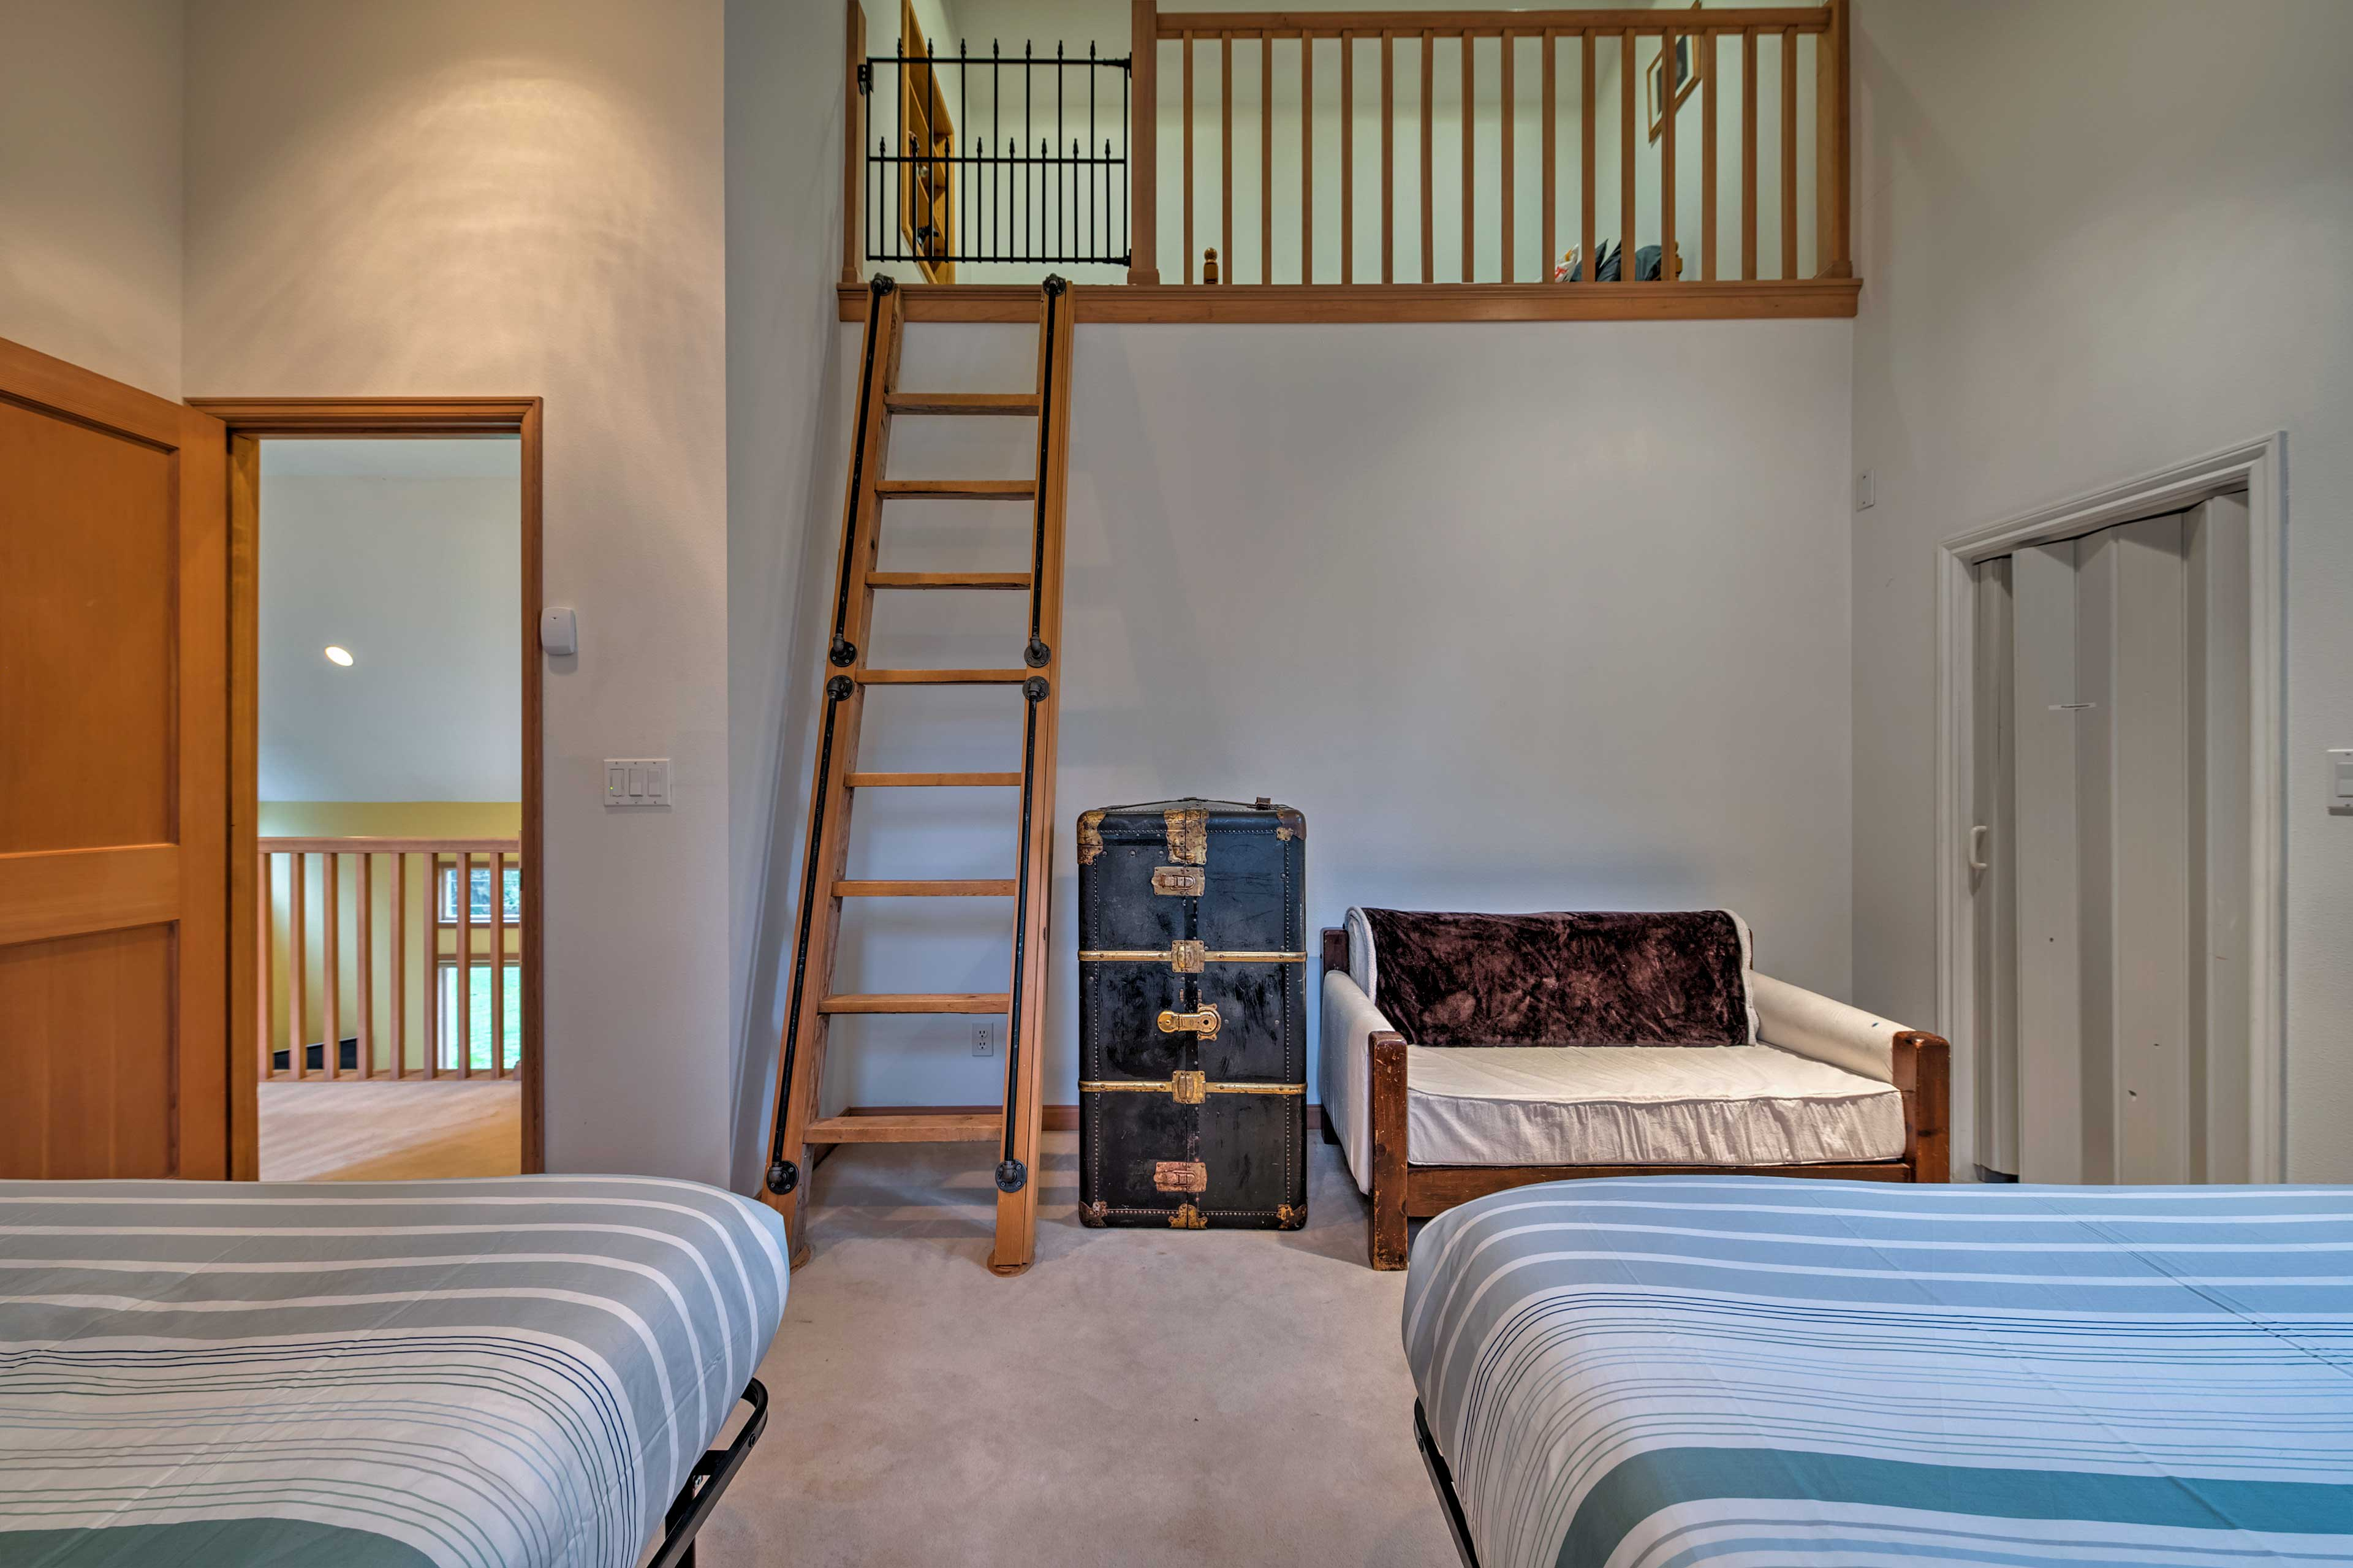 Find a loft up the stairs, making for a unique hideaway.